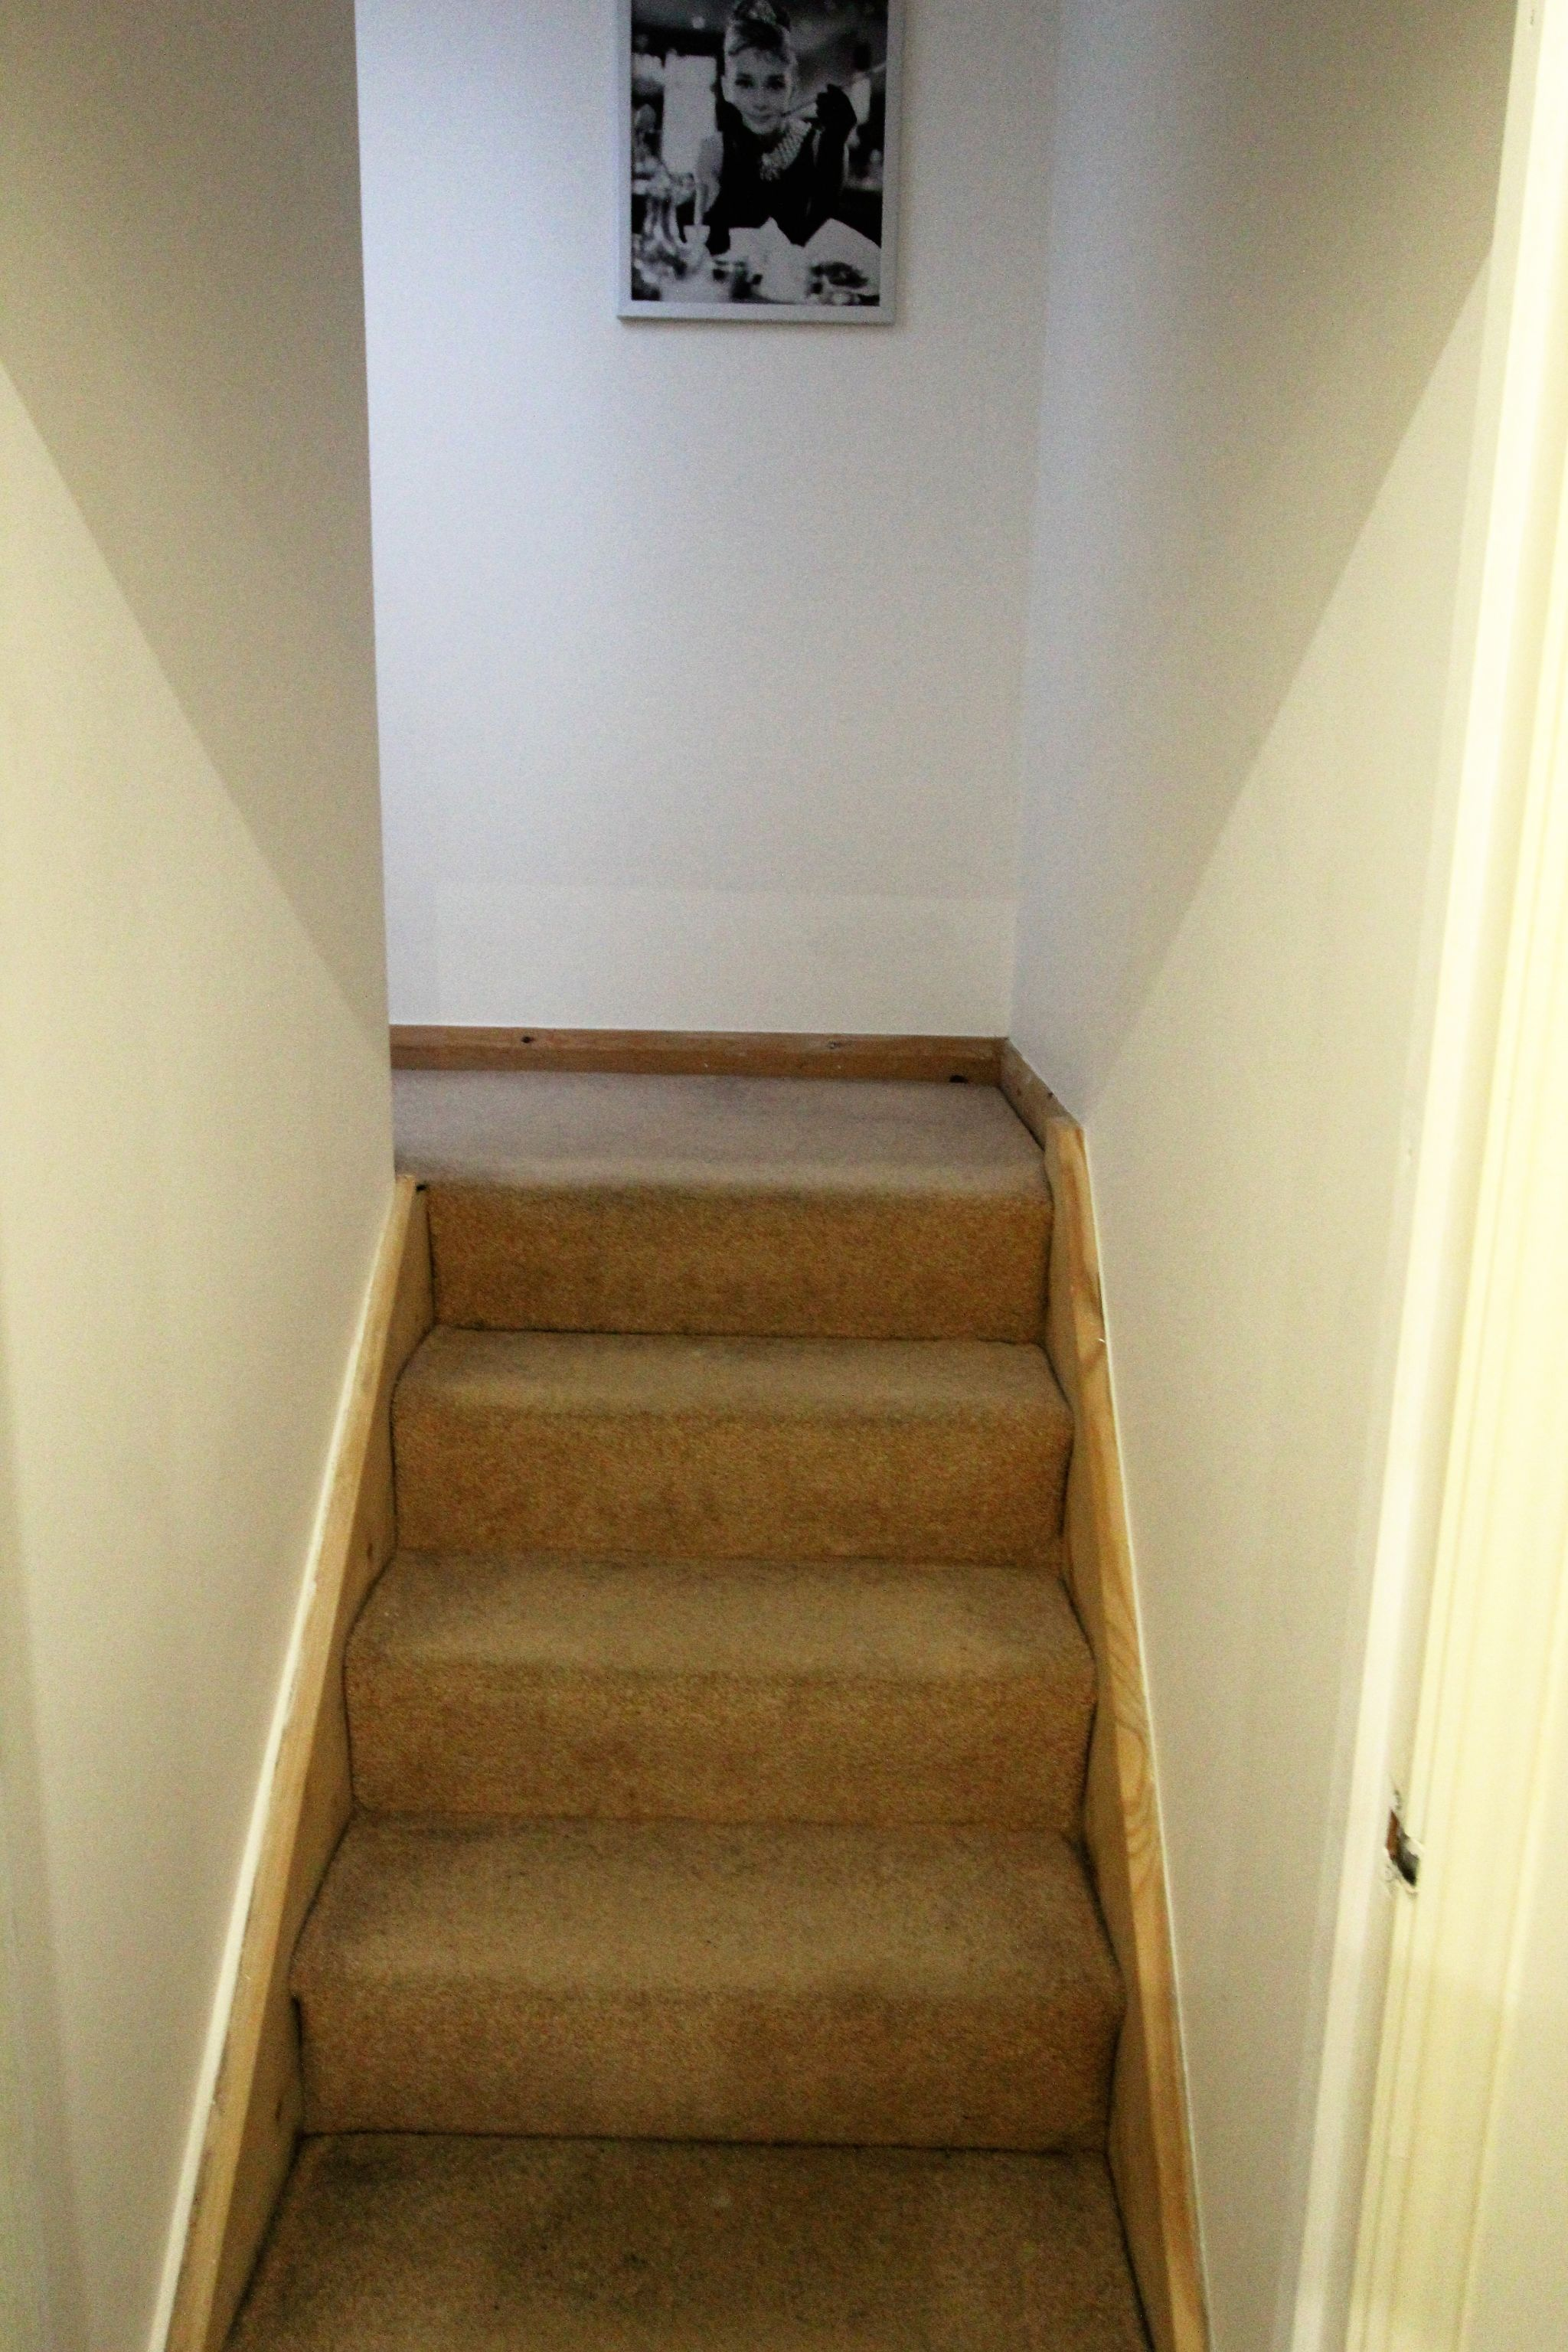 3 bedroom mid terraced house Let Agreed in Brighouse - Stairs to 2nd floor